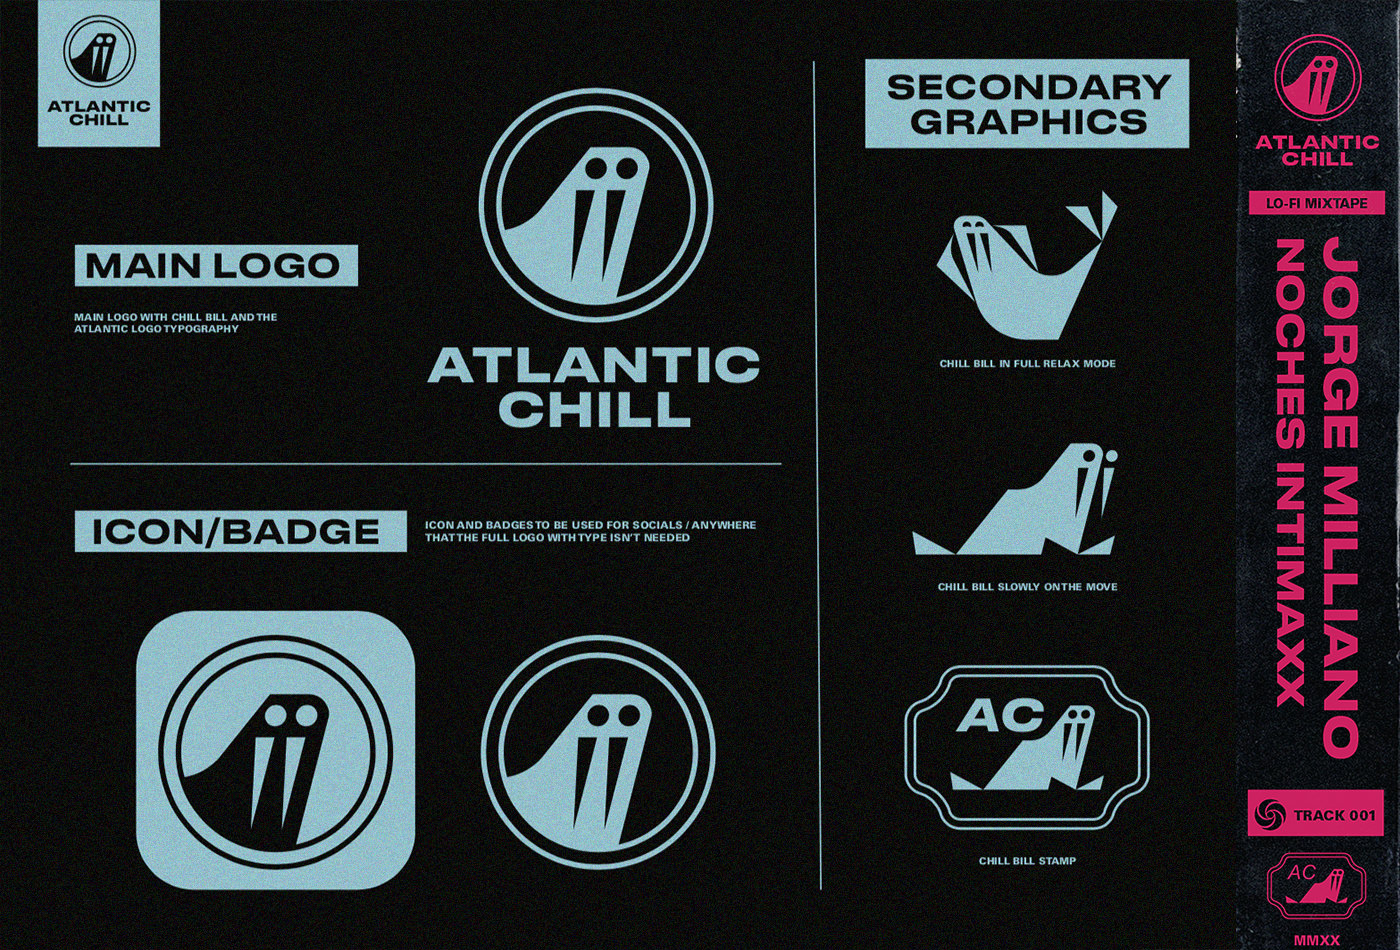 visual-identityspotify-atalntic-chill-atlanticchill-atlantic-records-atlanticrecords-walrus-logo-music-youtube-lofi-lo-fi-japanese-obi-branding-vacaliebres